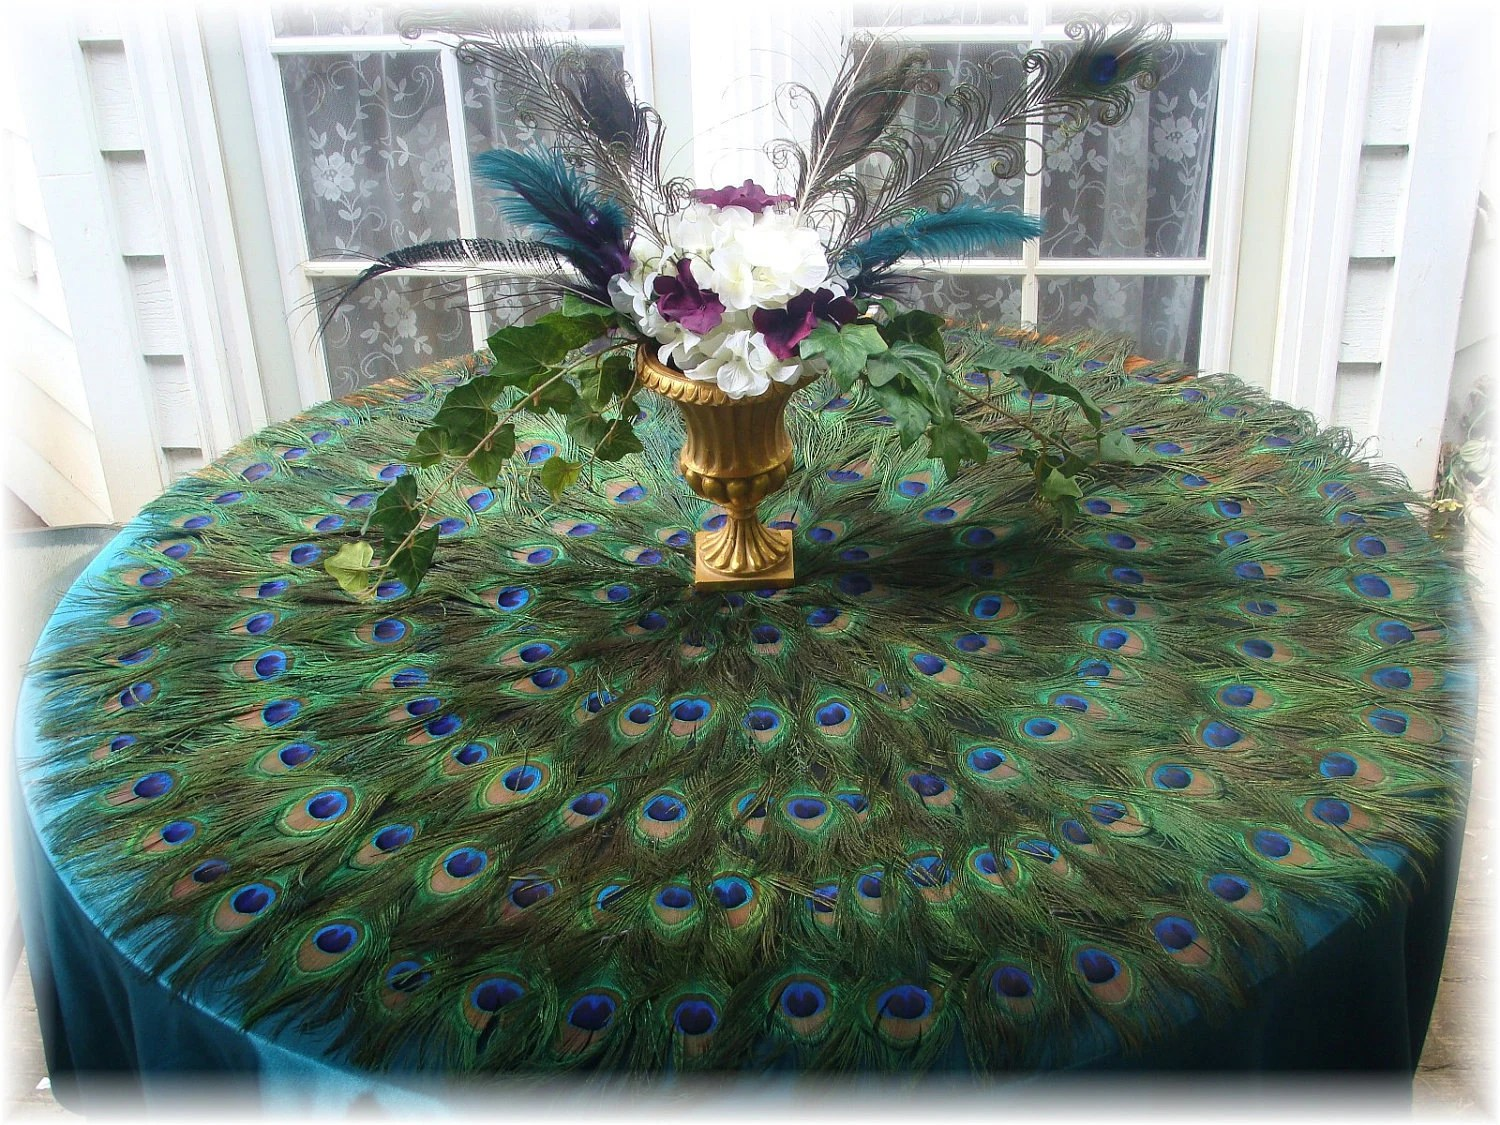 Items Similar To Peacock Feather Tablecloth Mat 42 On Etsy